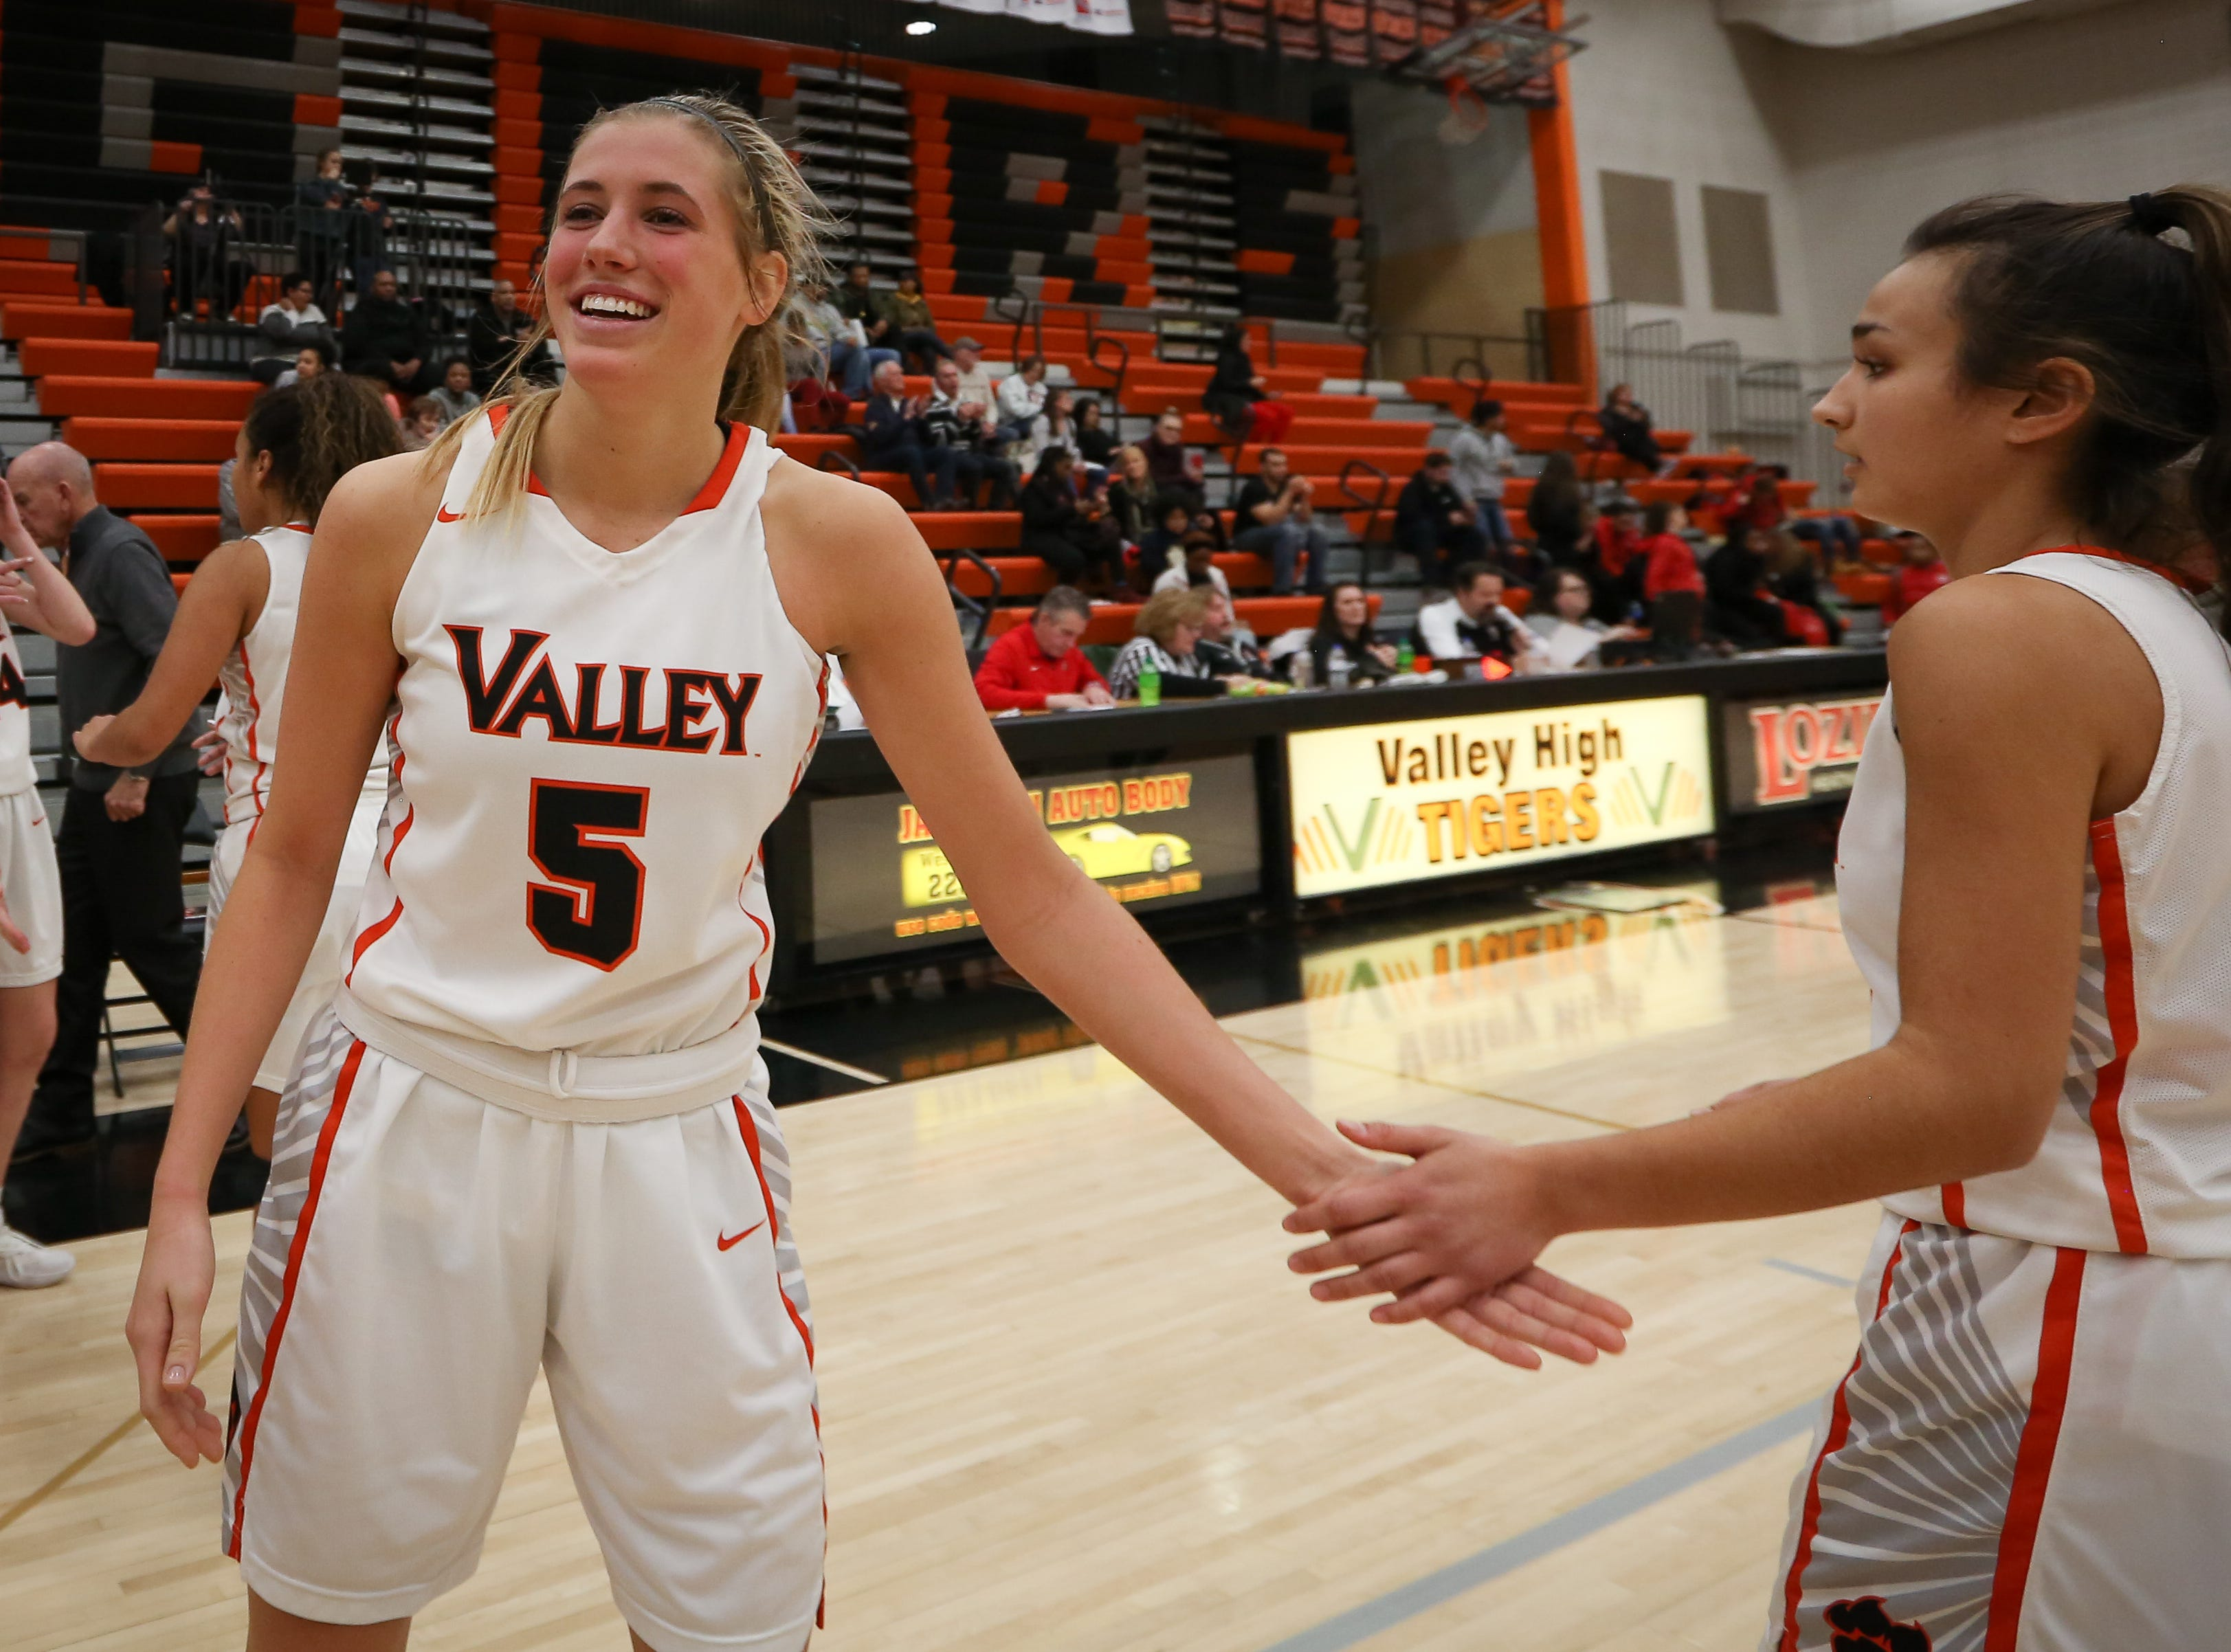 Valley junior Grace Plummer celebrates with sophomore Anna Bernhard after the Tigers defeated the East Scarlets, 67-46, in a girls high school basketball game at Coldiron Fieldhouse at Valley High School on Jan. 8, 2019 in West Des Moines, Iowa.